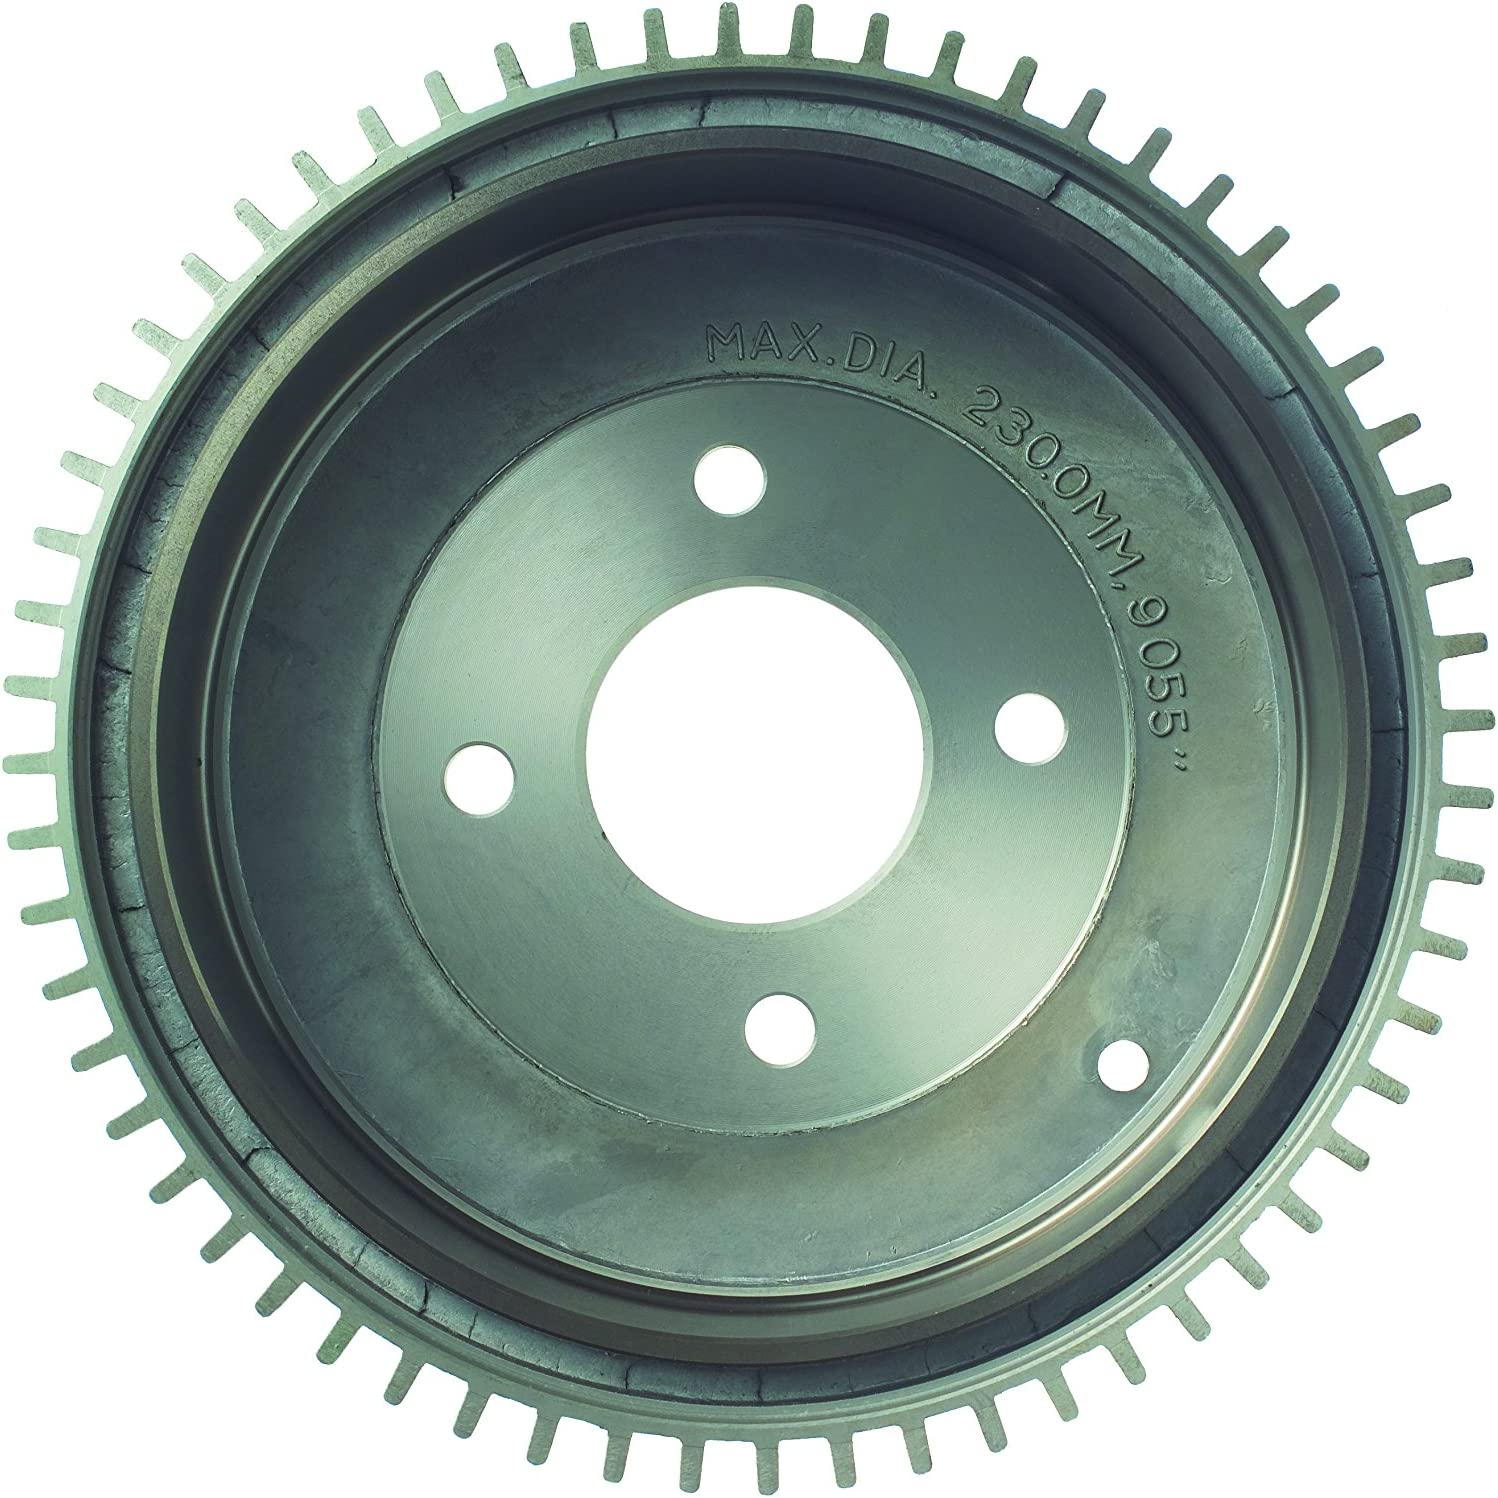 sold Directly managed store out Magneti Marelli 1AMVD20316 Drum Brake